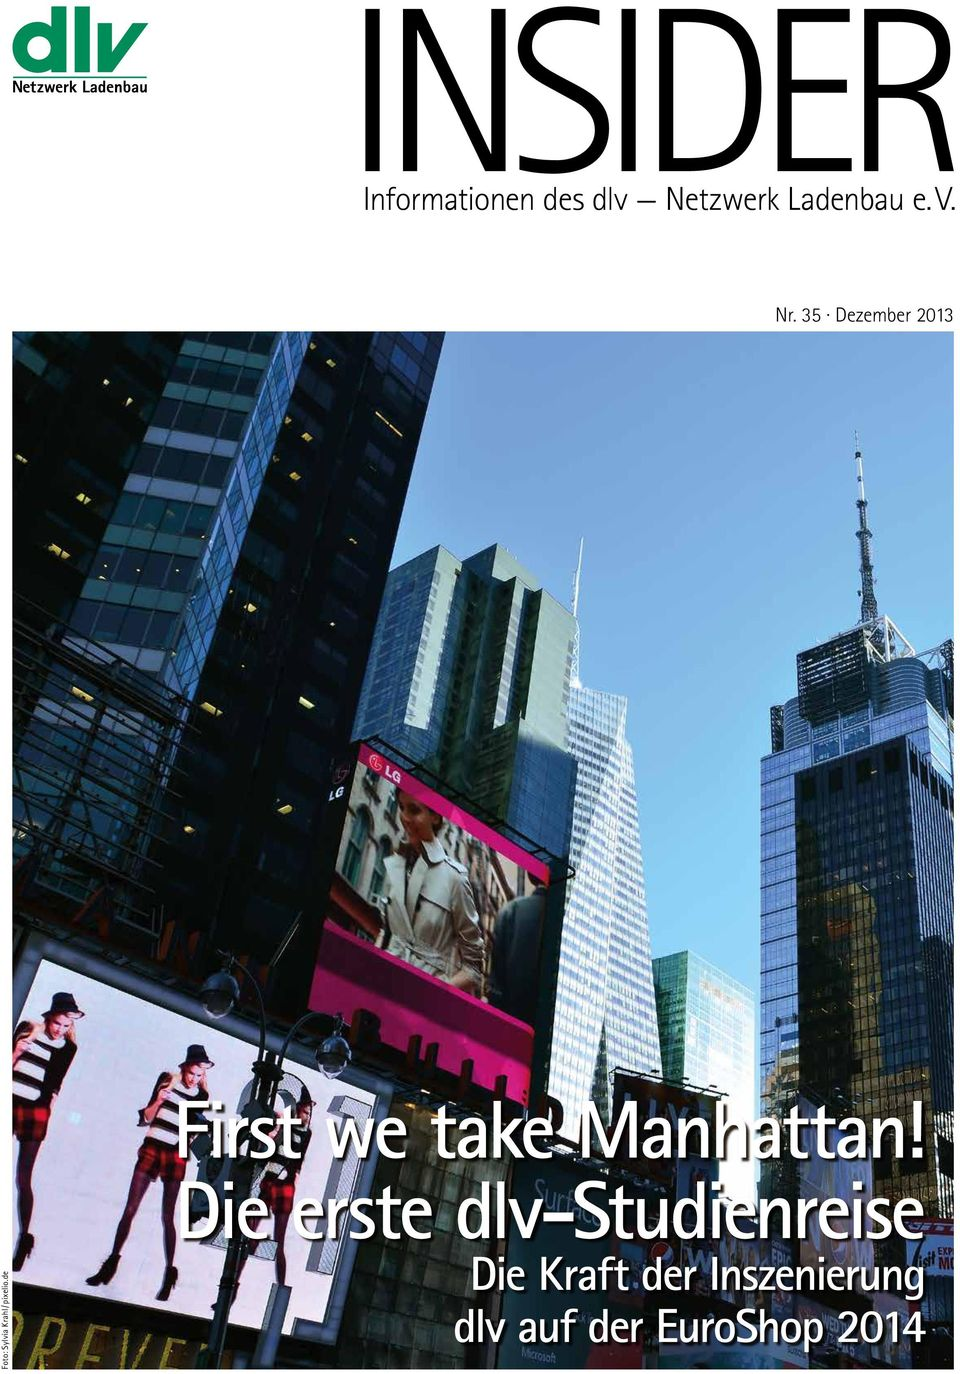 de First we take Manhattan!